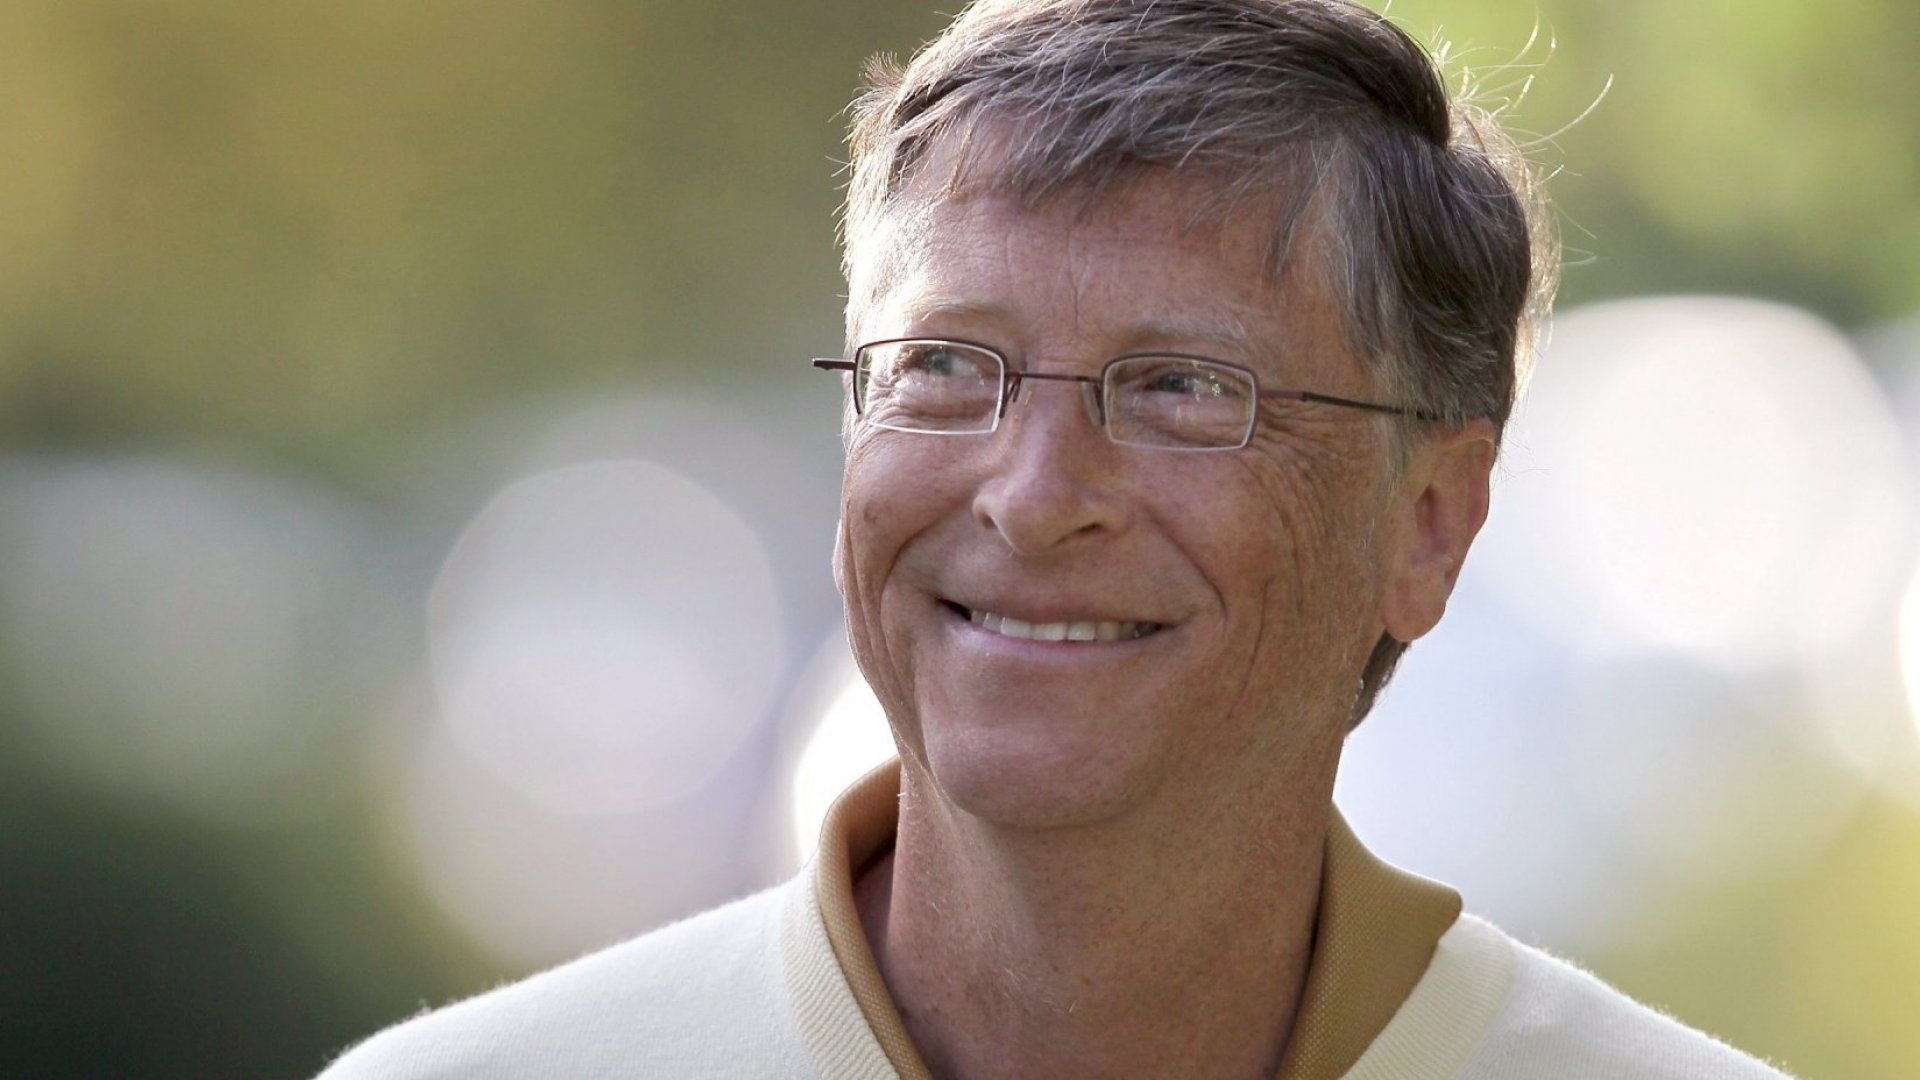 Bill Gates Wants You to Help Solve These 10 Big Challenges. (The World Needs Your Ideas)